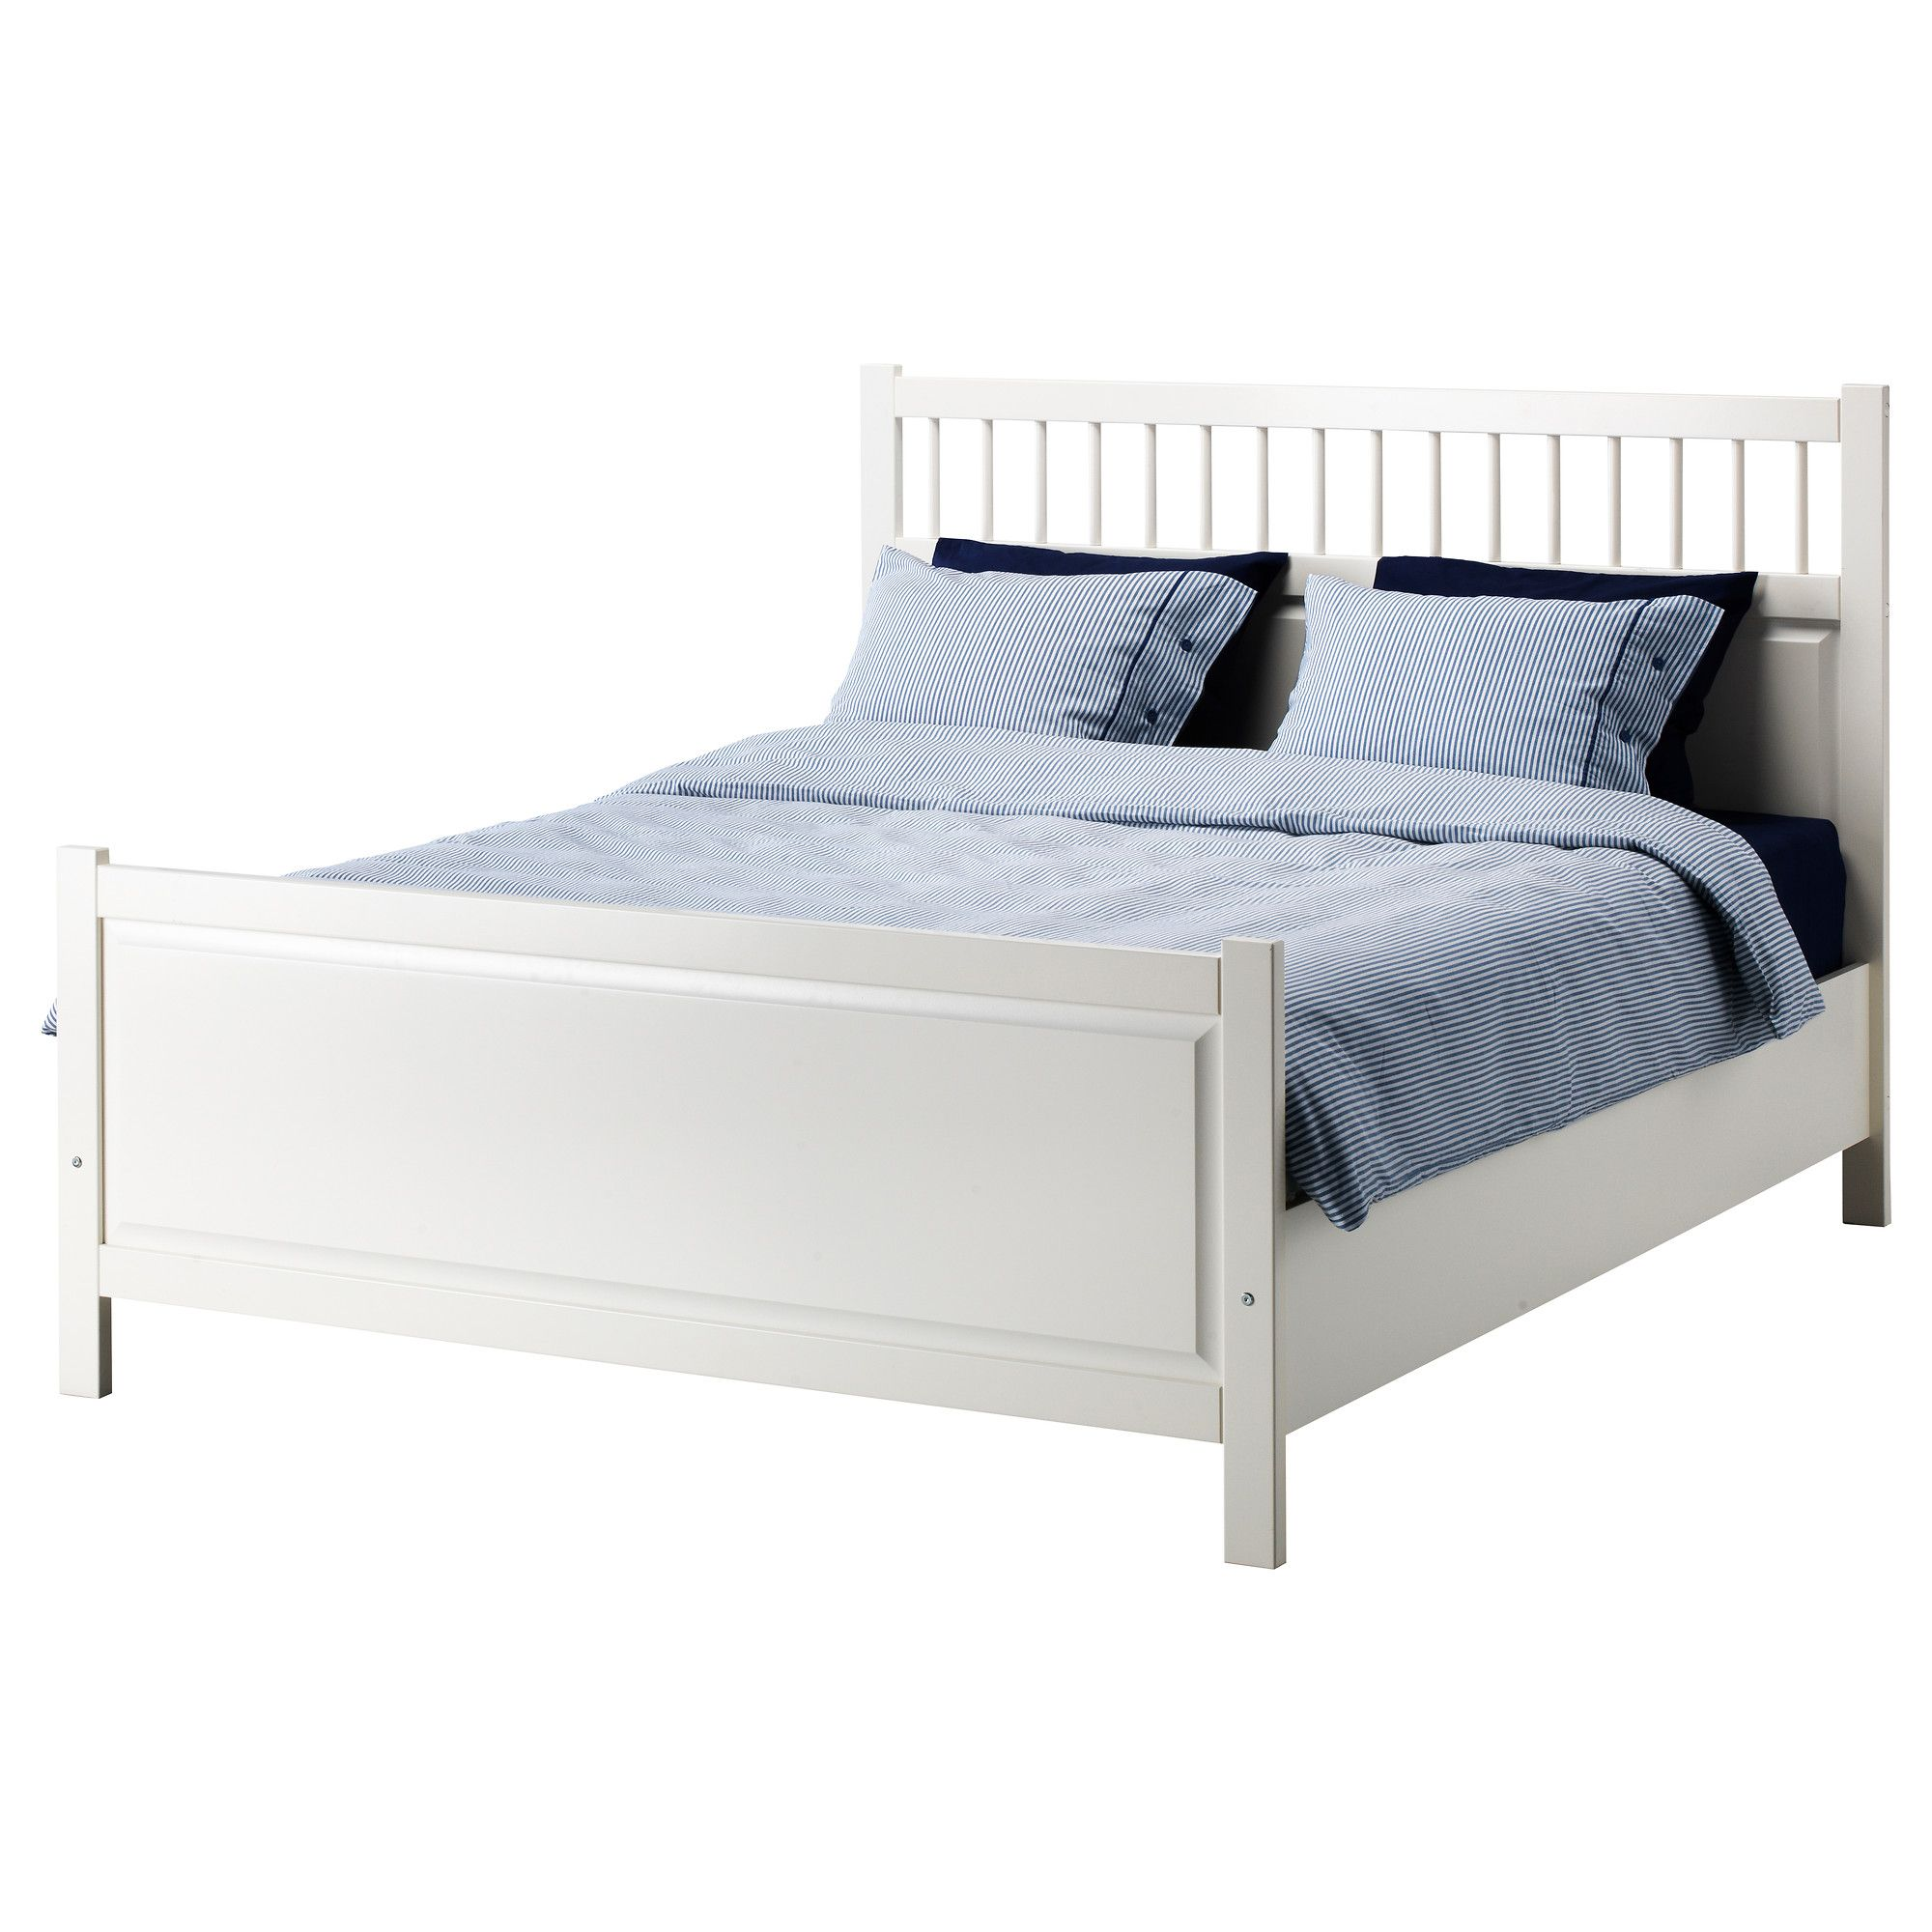 Betthaupt Ikea Hemnes Bed Frame Full Ikea For Kaylee Decorating A New Home